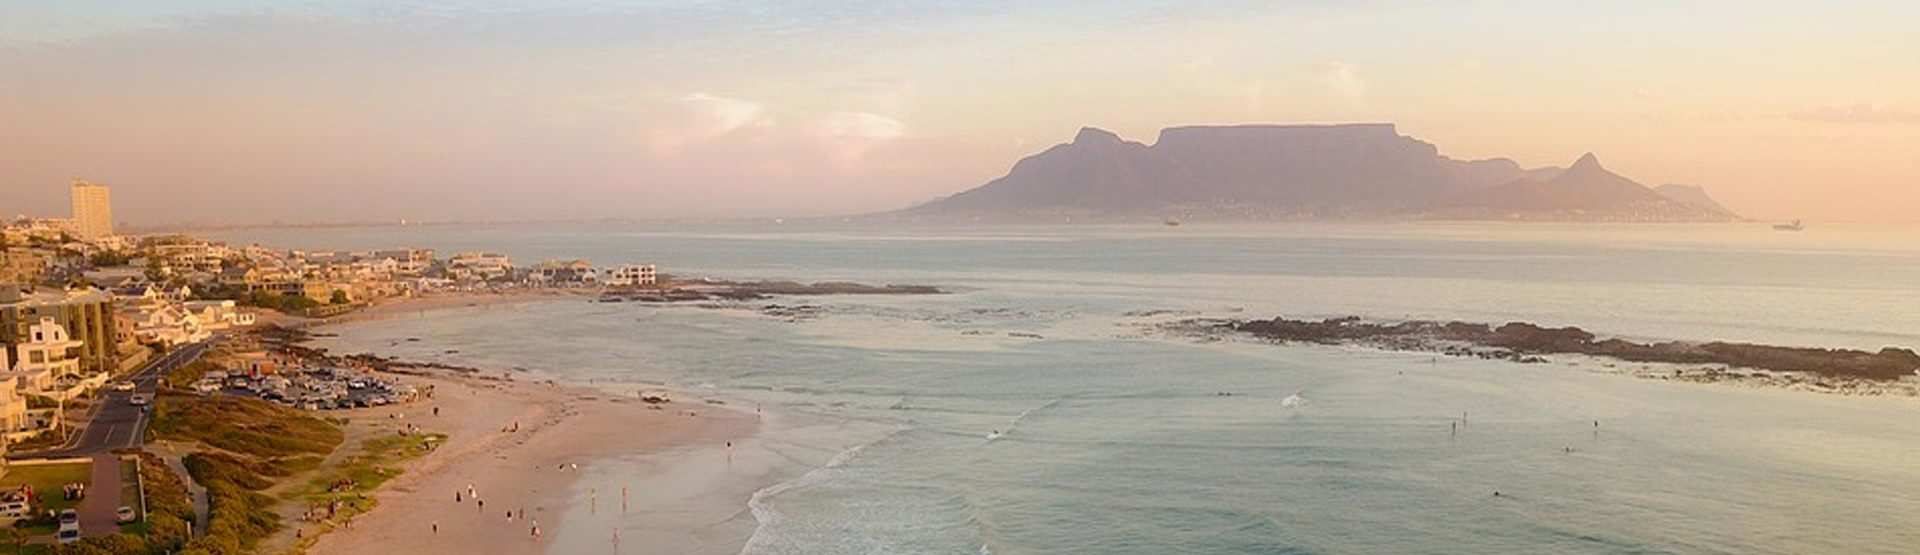 The Three Boutique Hotel  Cape Town  Luxury Accommodation  Lion Roars Hotels And Lodges Blog 0